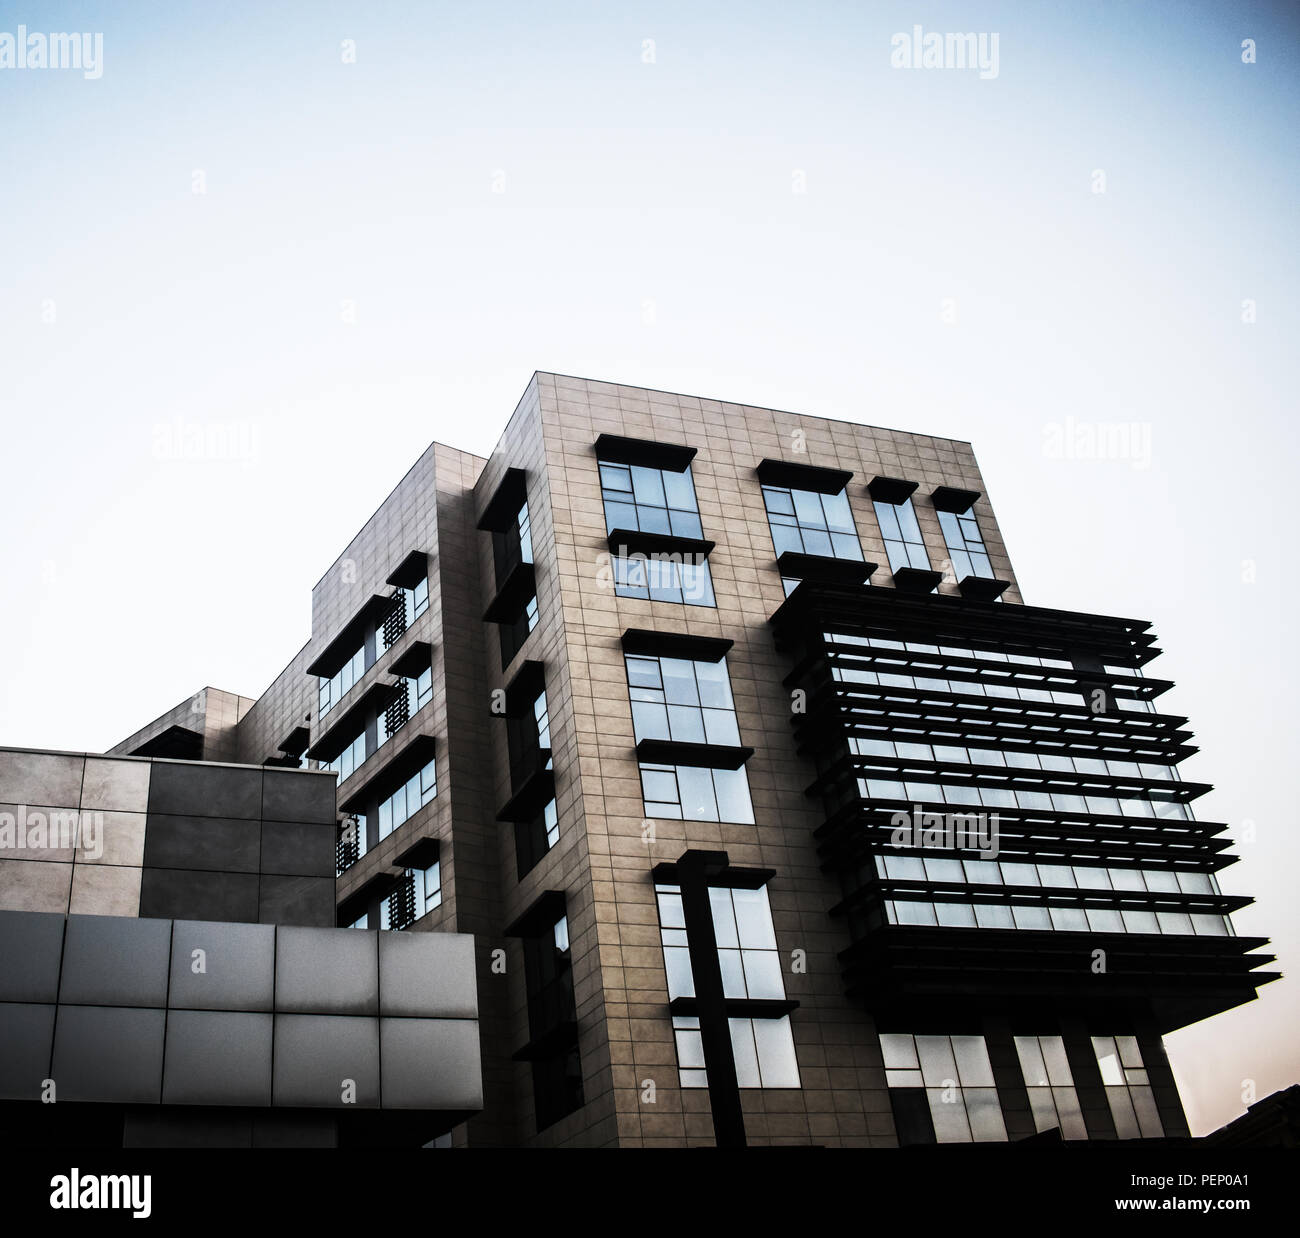 Modern Architecture making part of Smart City in Malta which is used for office and residential purposes. Stock Photo